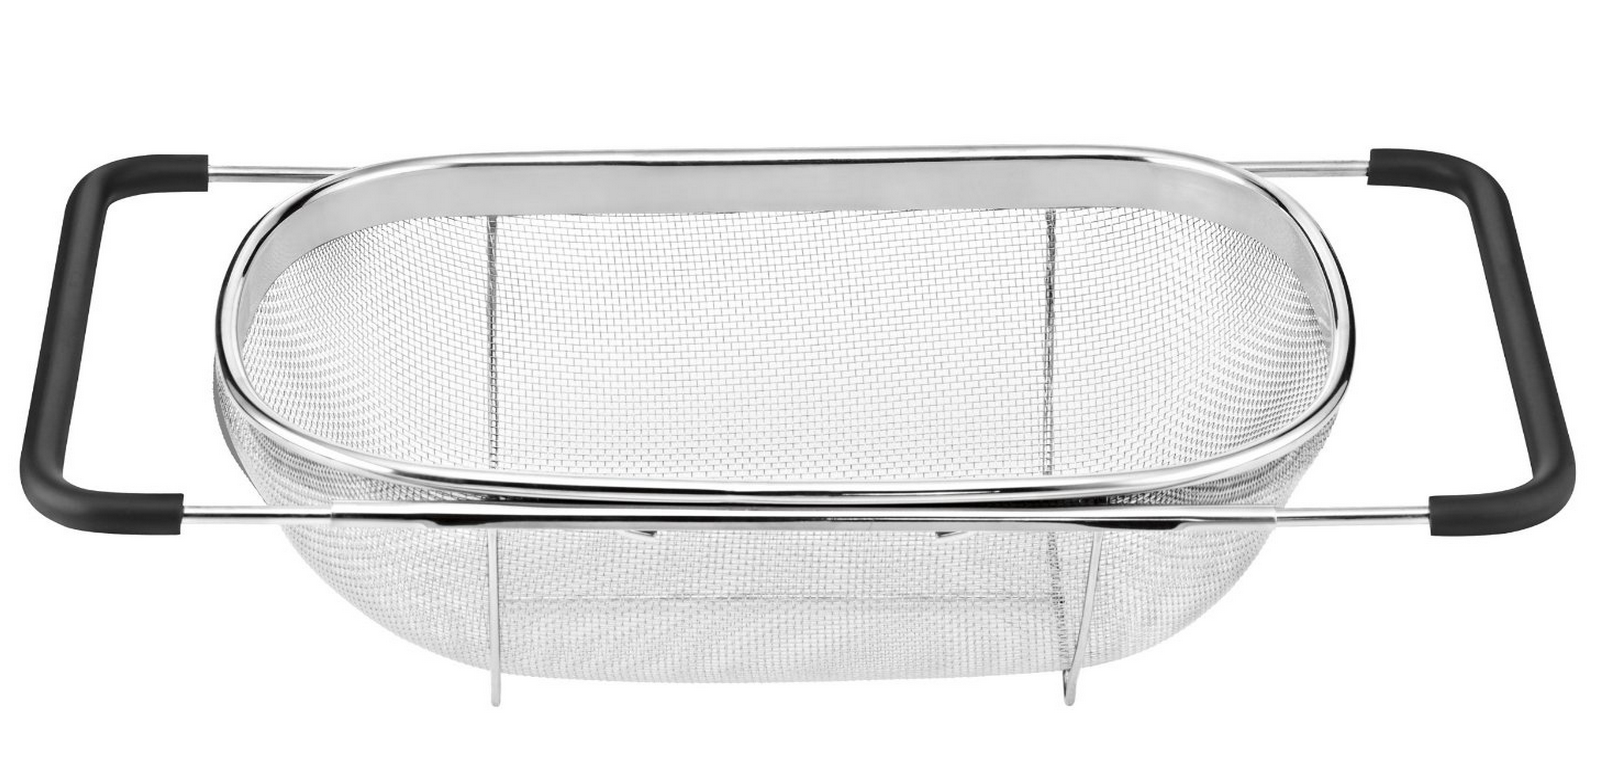 Cuisinart Over-The-Sink Colander Only $18.99 – Lowest Price!